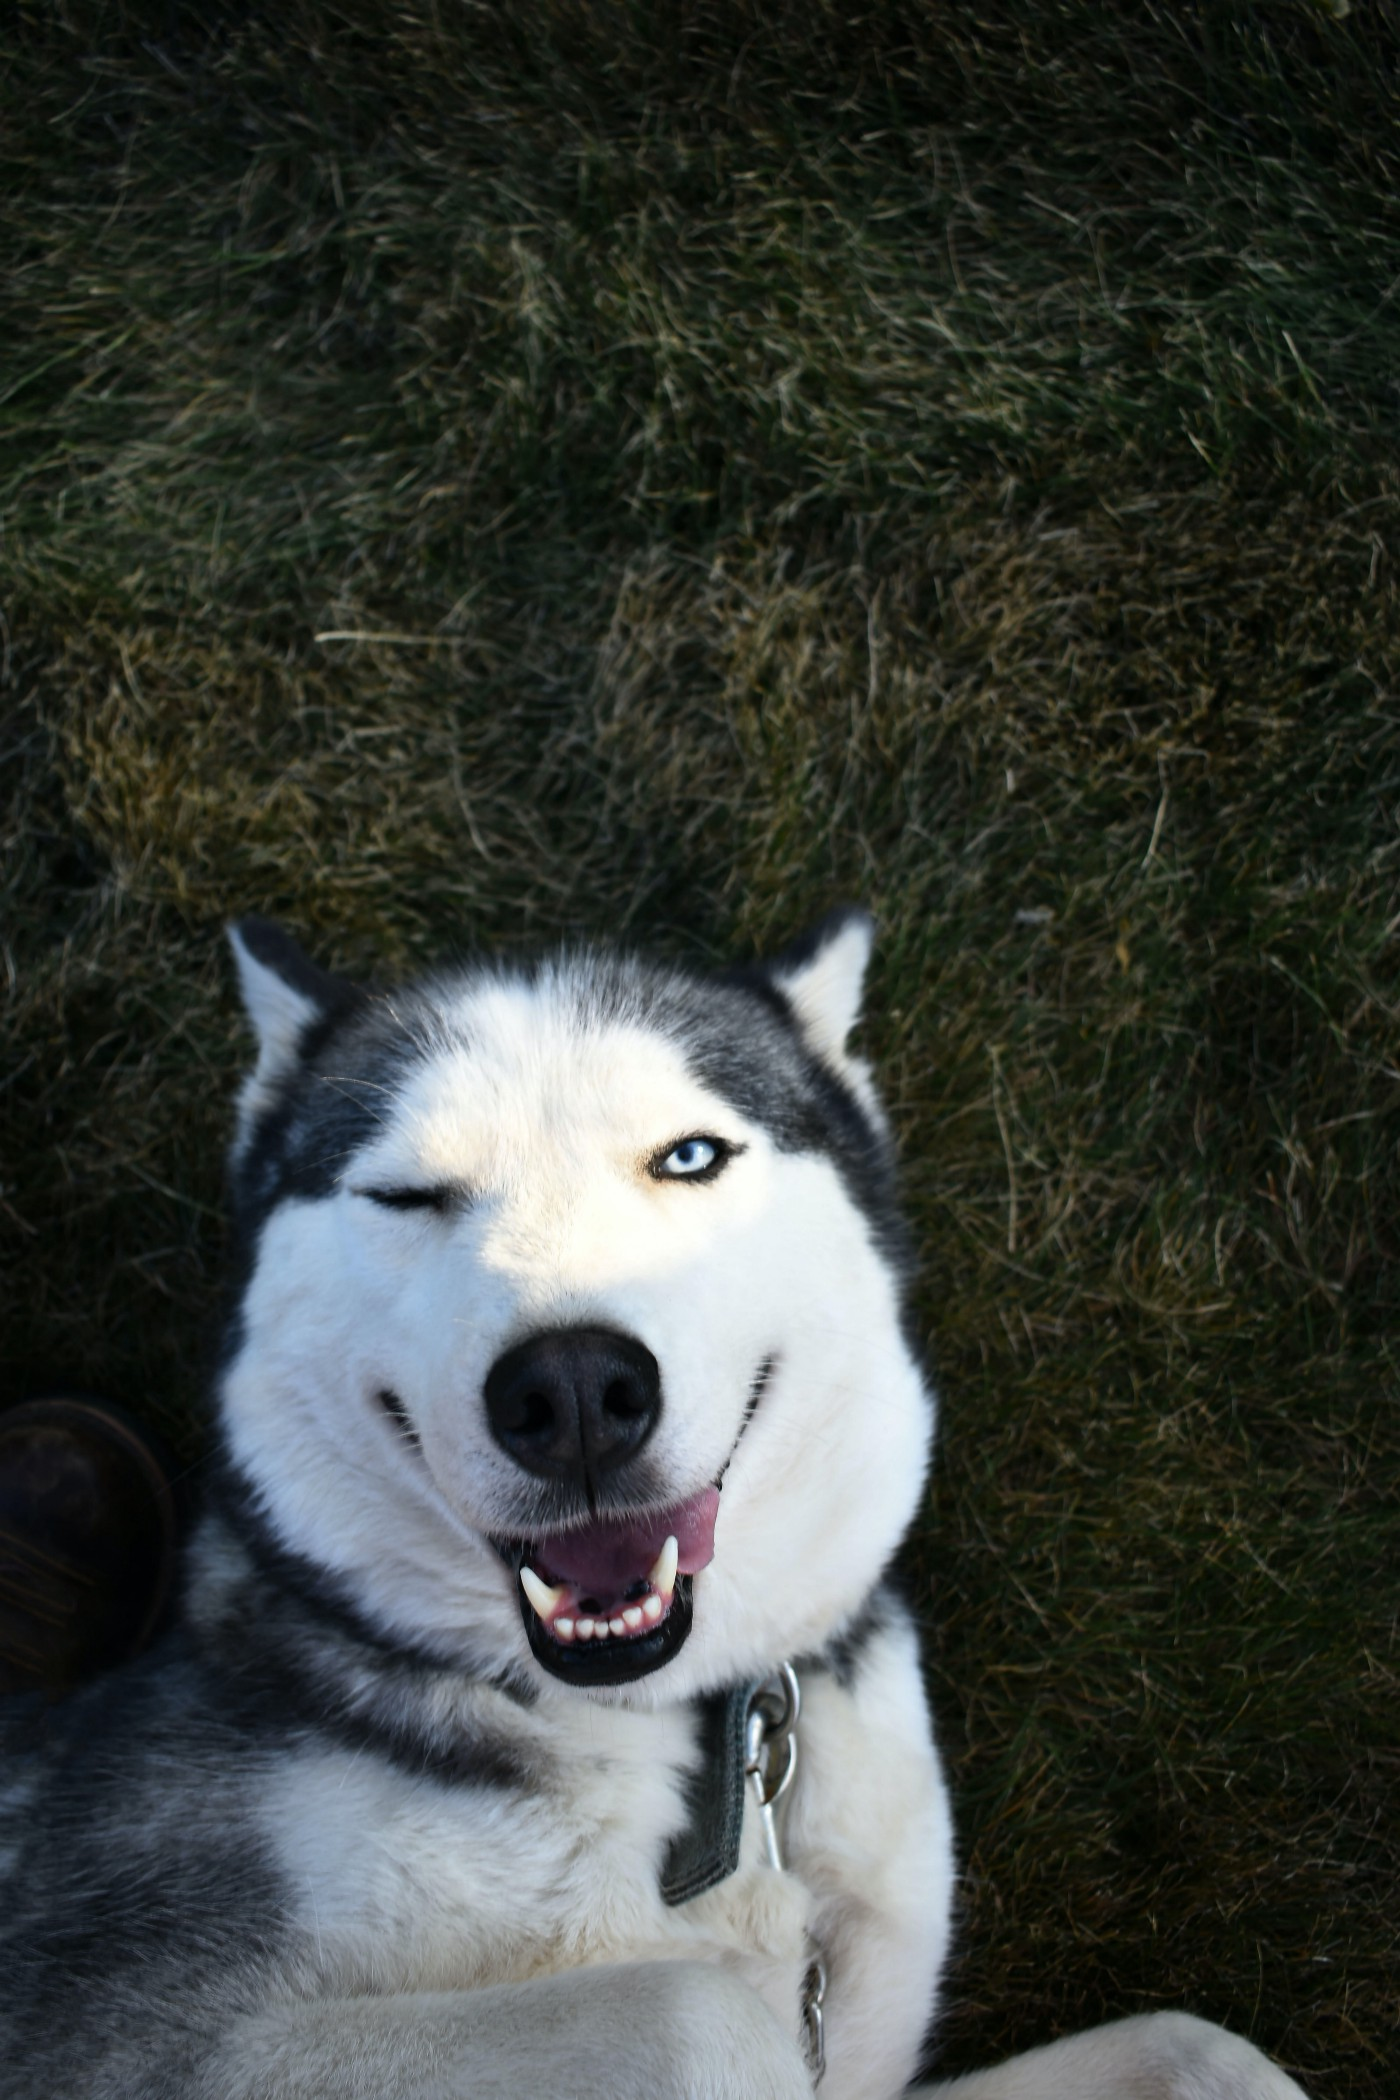 husky on its back winking roguishly at the camera